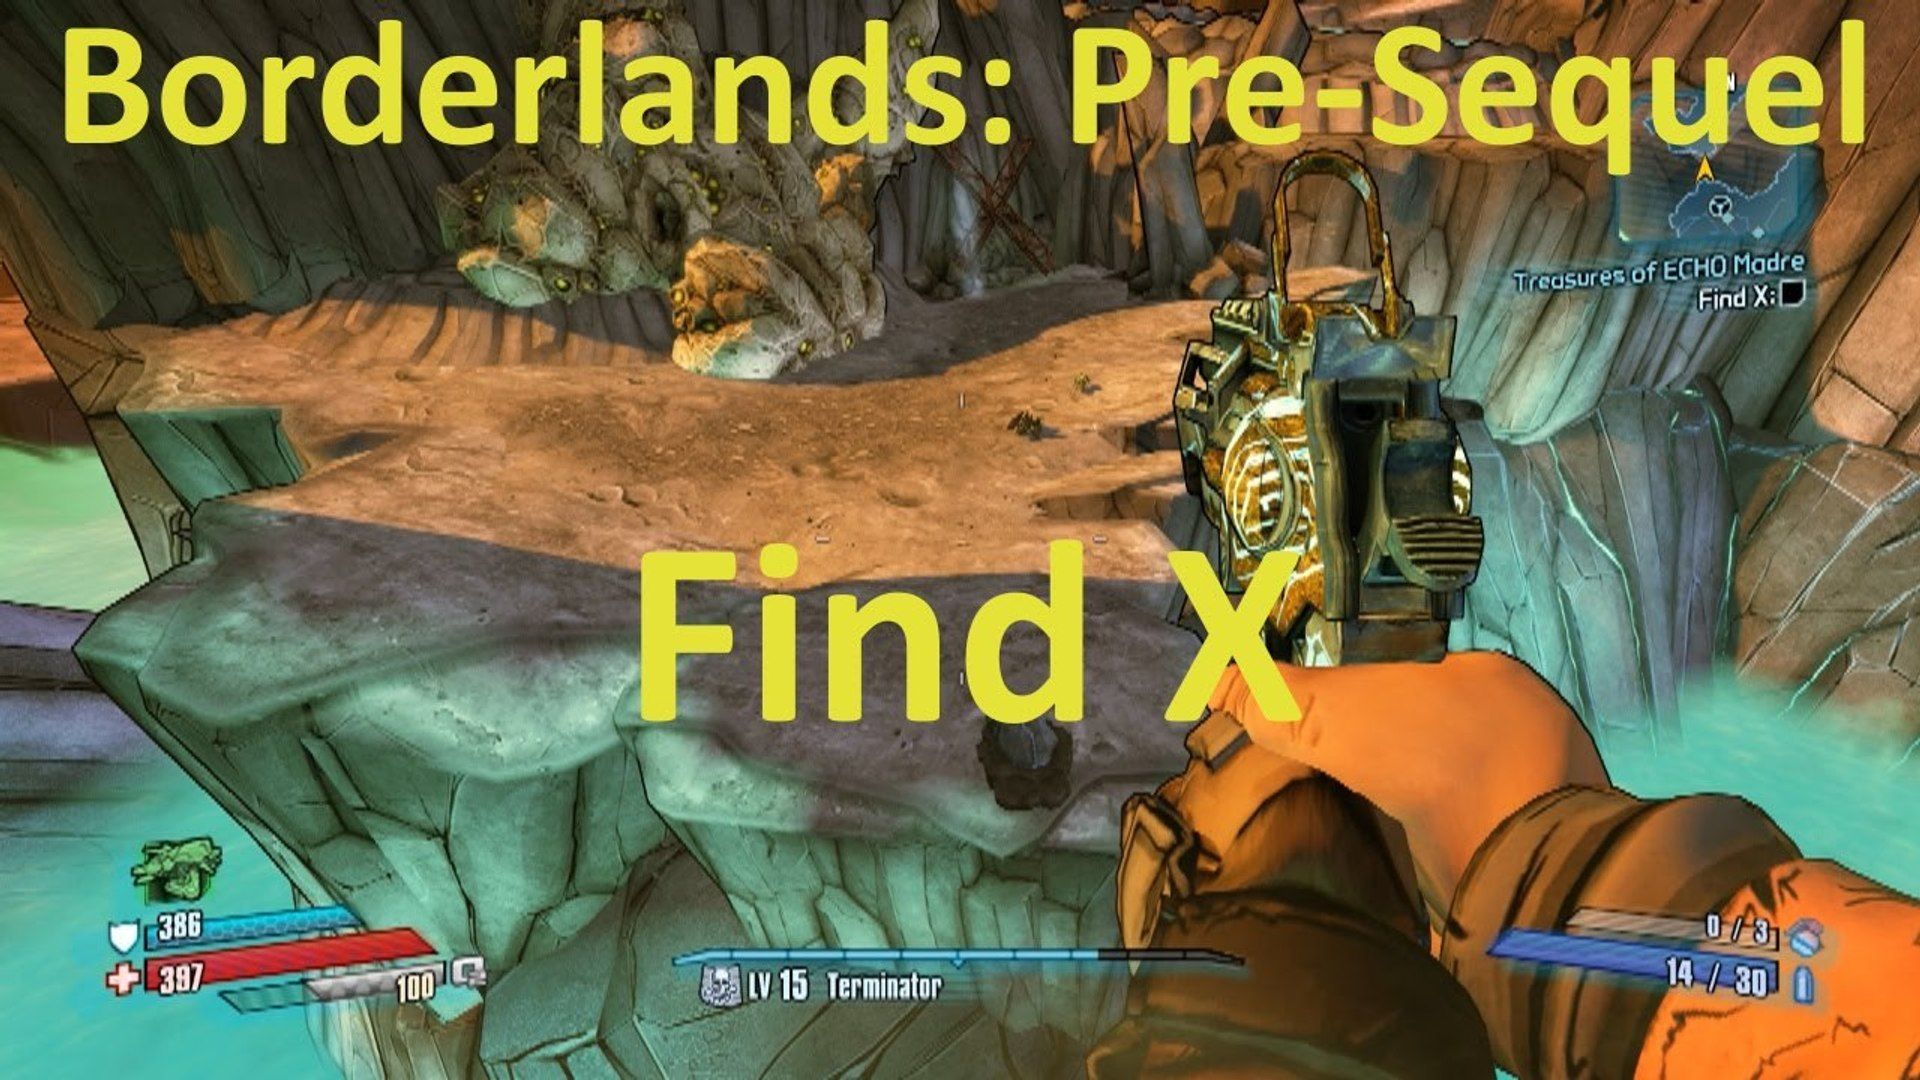 Find X in Treasures of ECHO Madre in Borderlands: The Pre-Sequel! - video  dailymotion